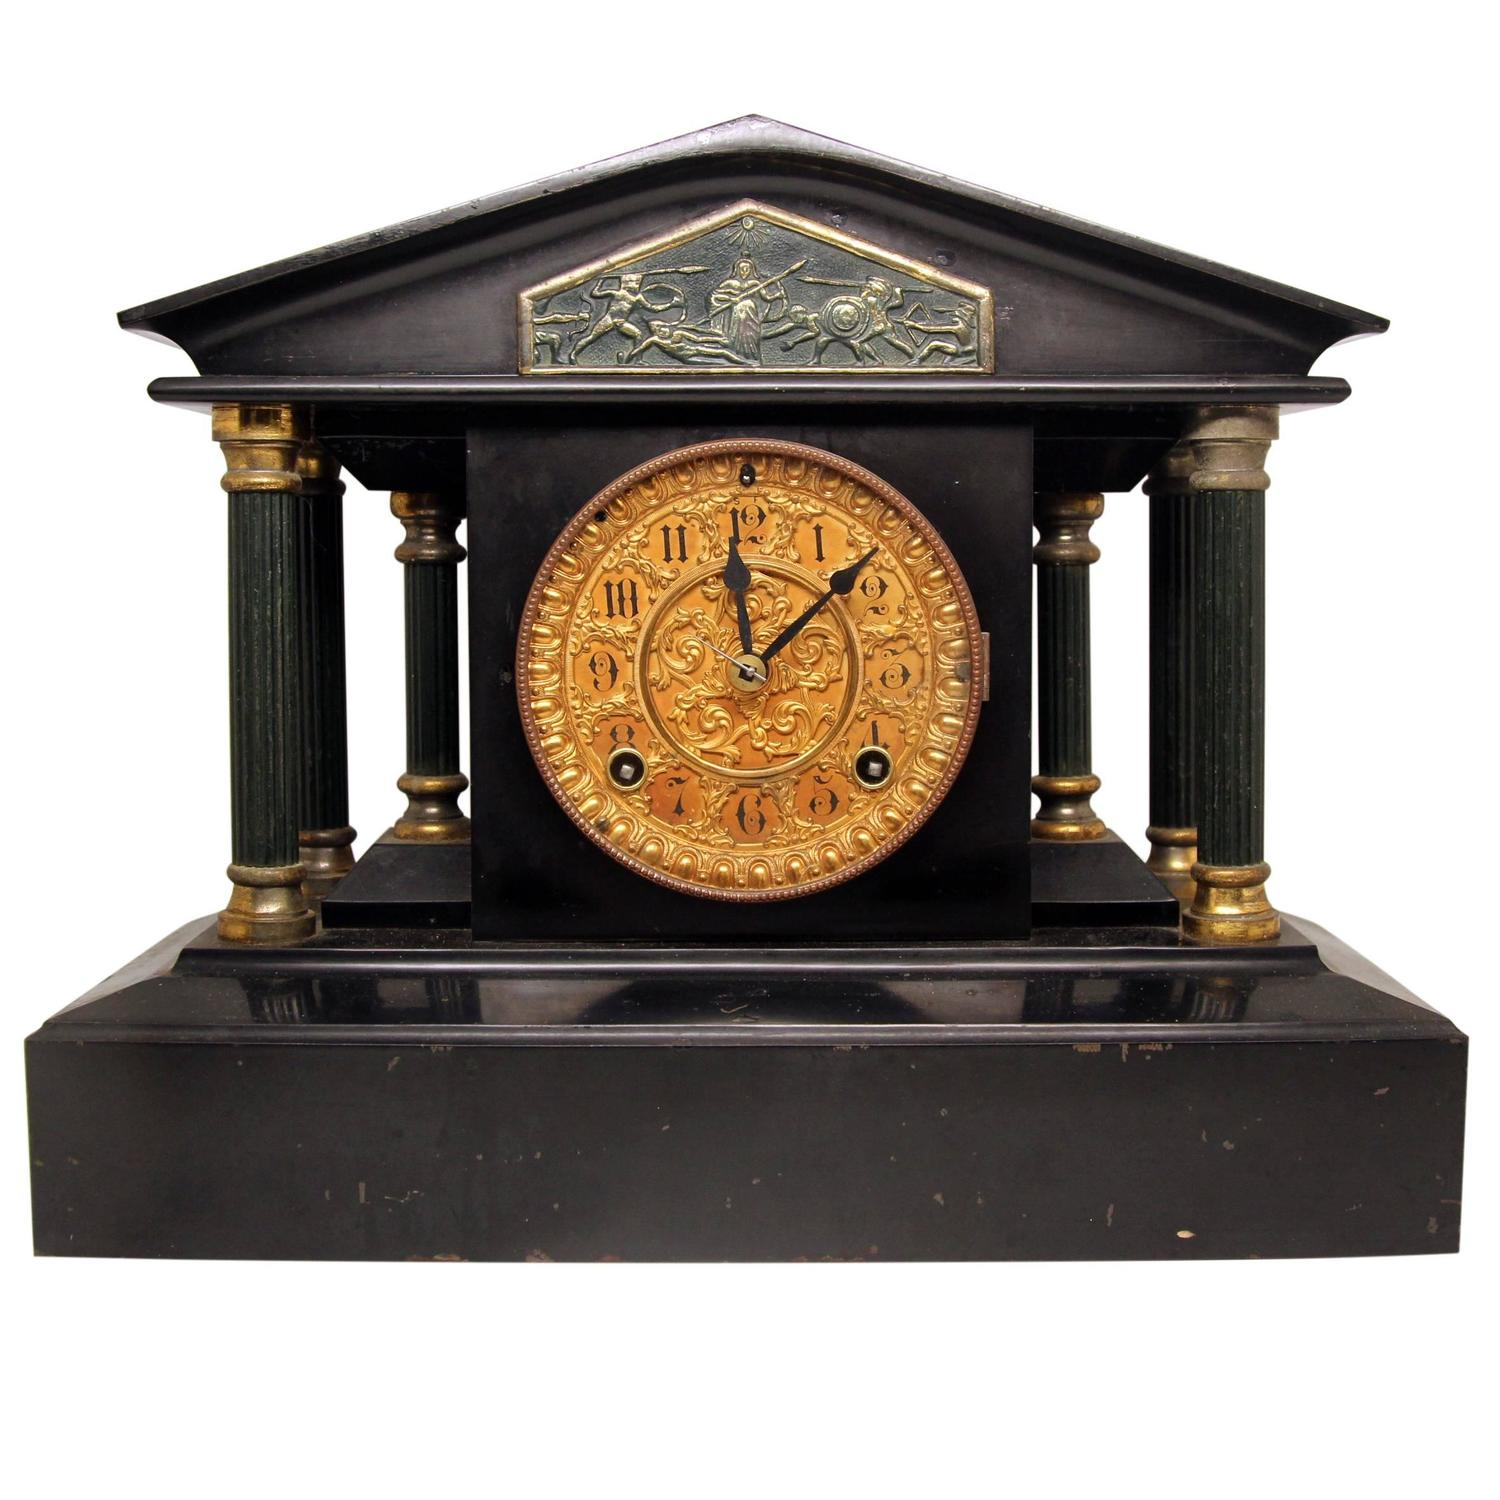 ansonia marble mantel clock with brass and greek egg and dart detailing for sale at 1stdibs - Mantel Clock